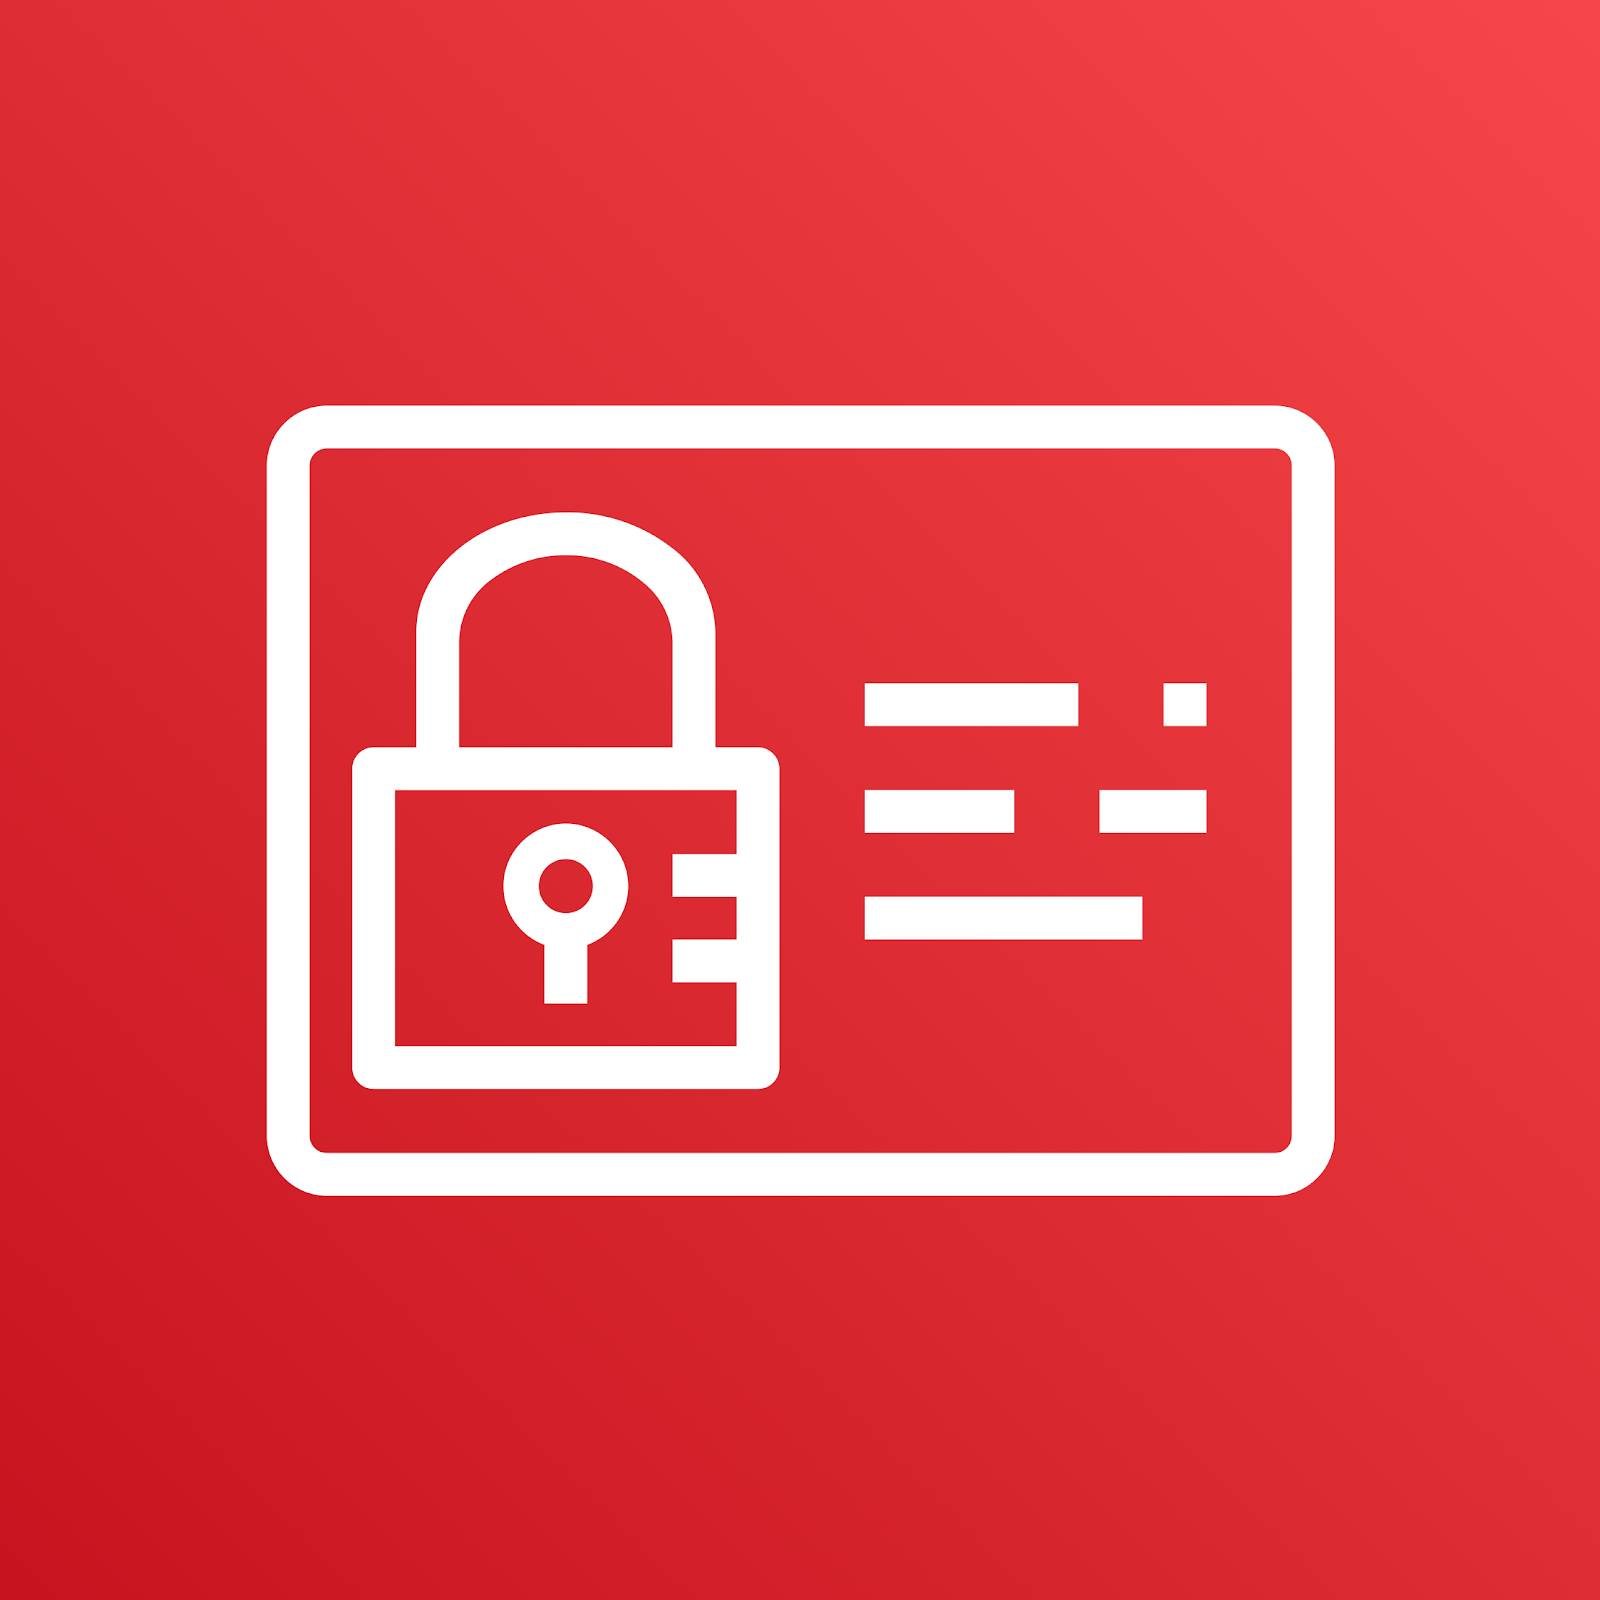 AWS Identity and Access Management icon depicting a lock and rectangular card against a red background